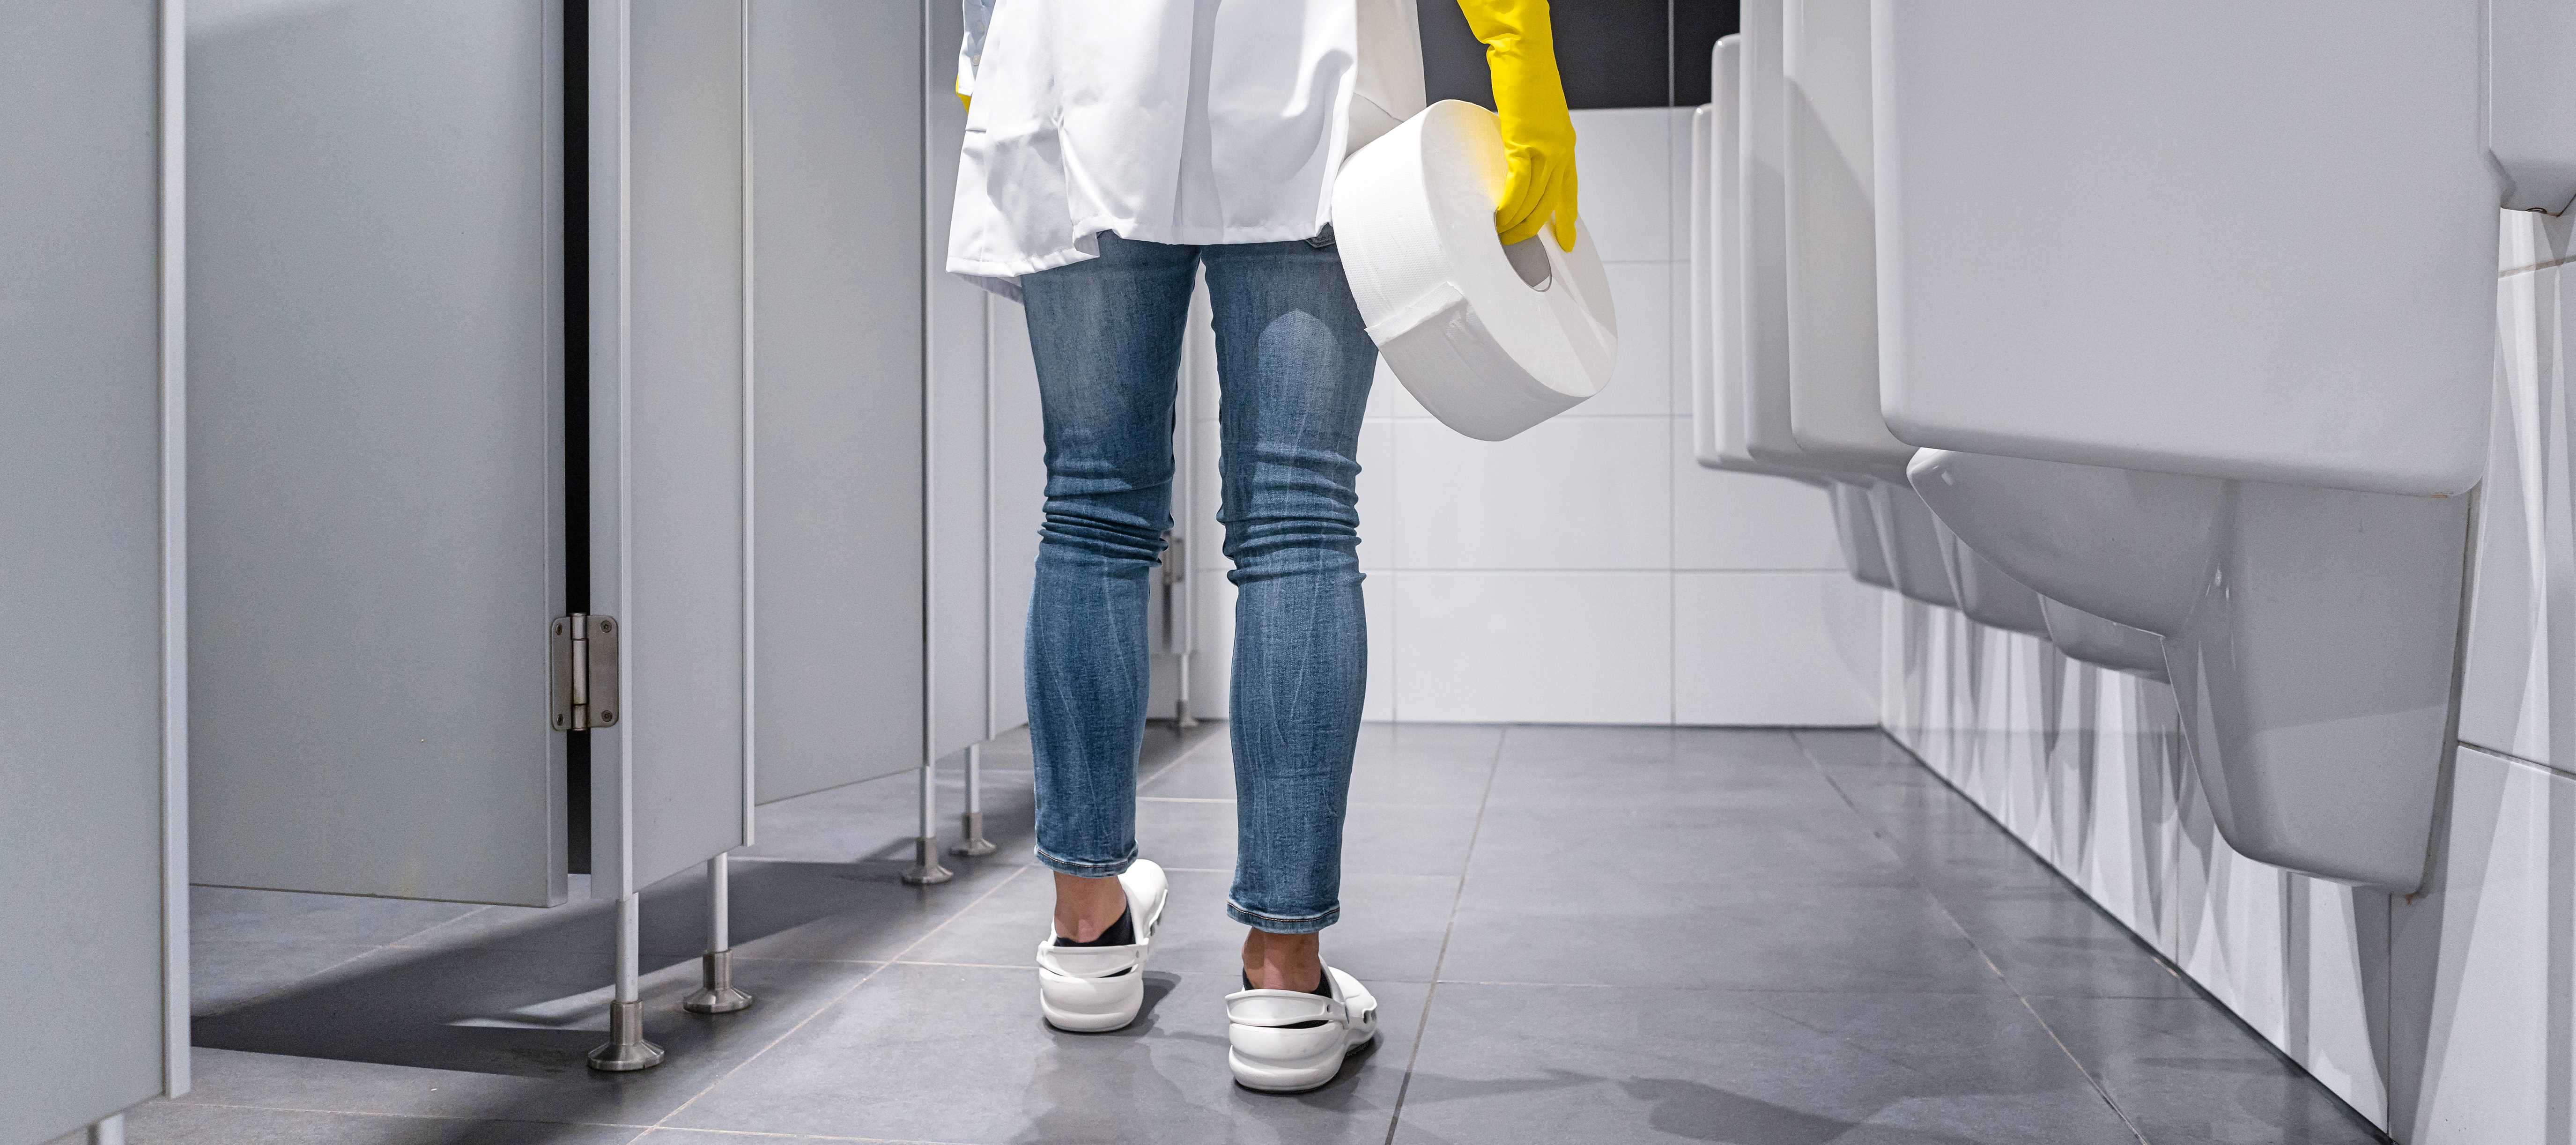 Cleaning Public Restrooms - Bathroom Cleaning Services Springfield MO